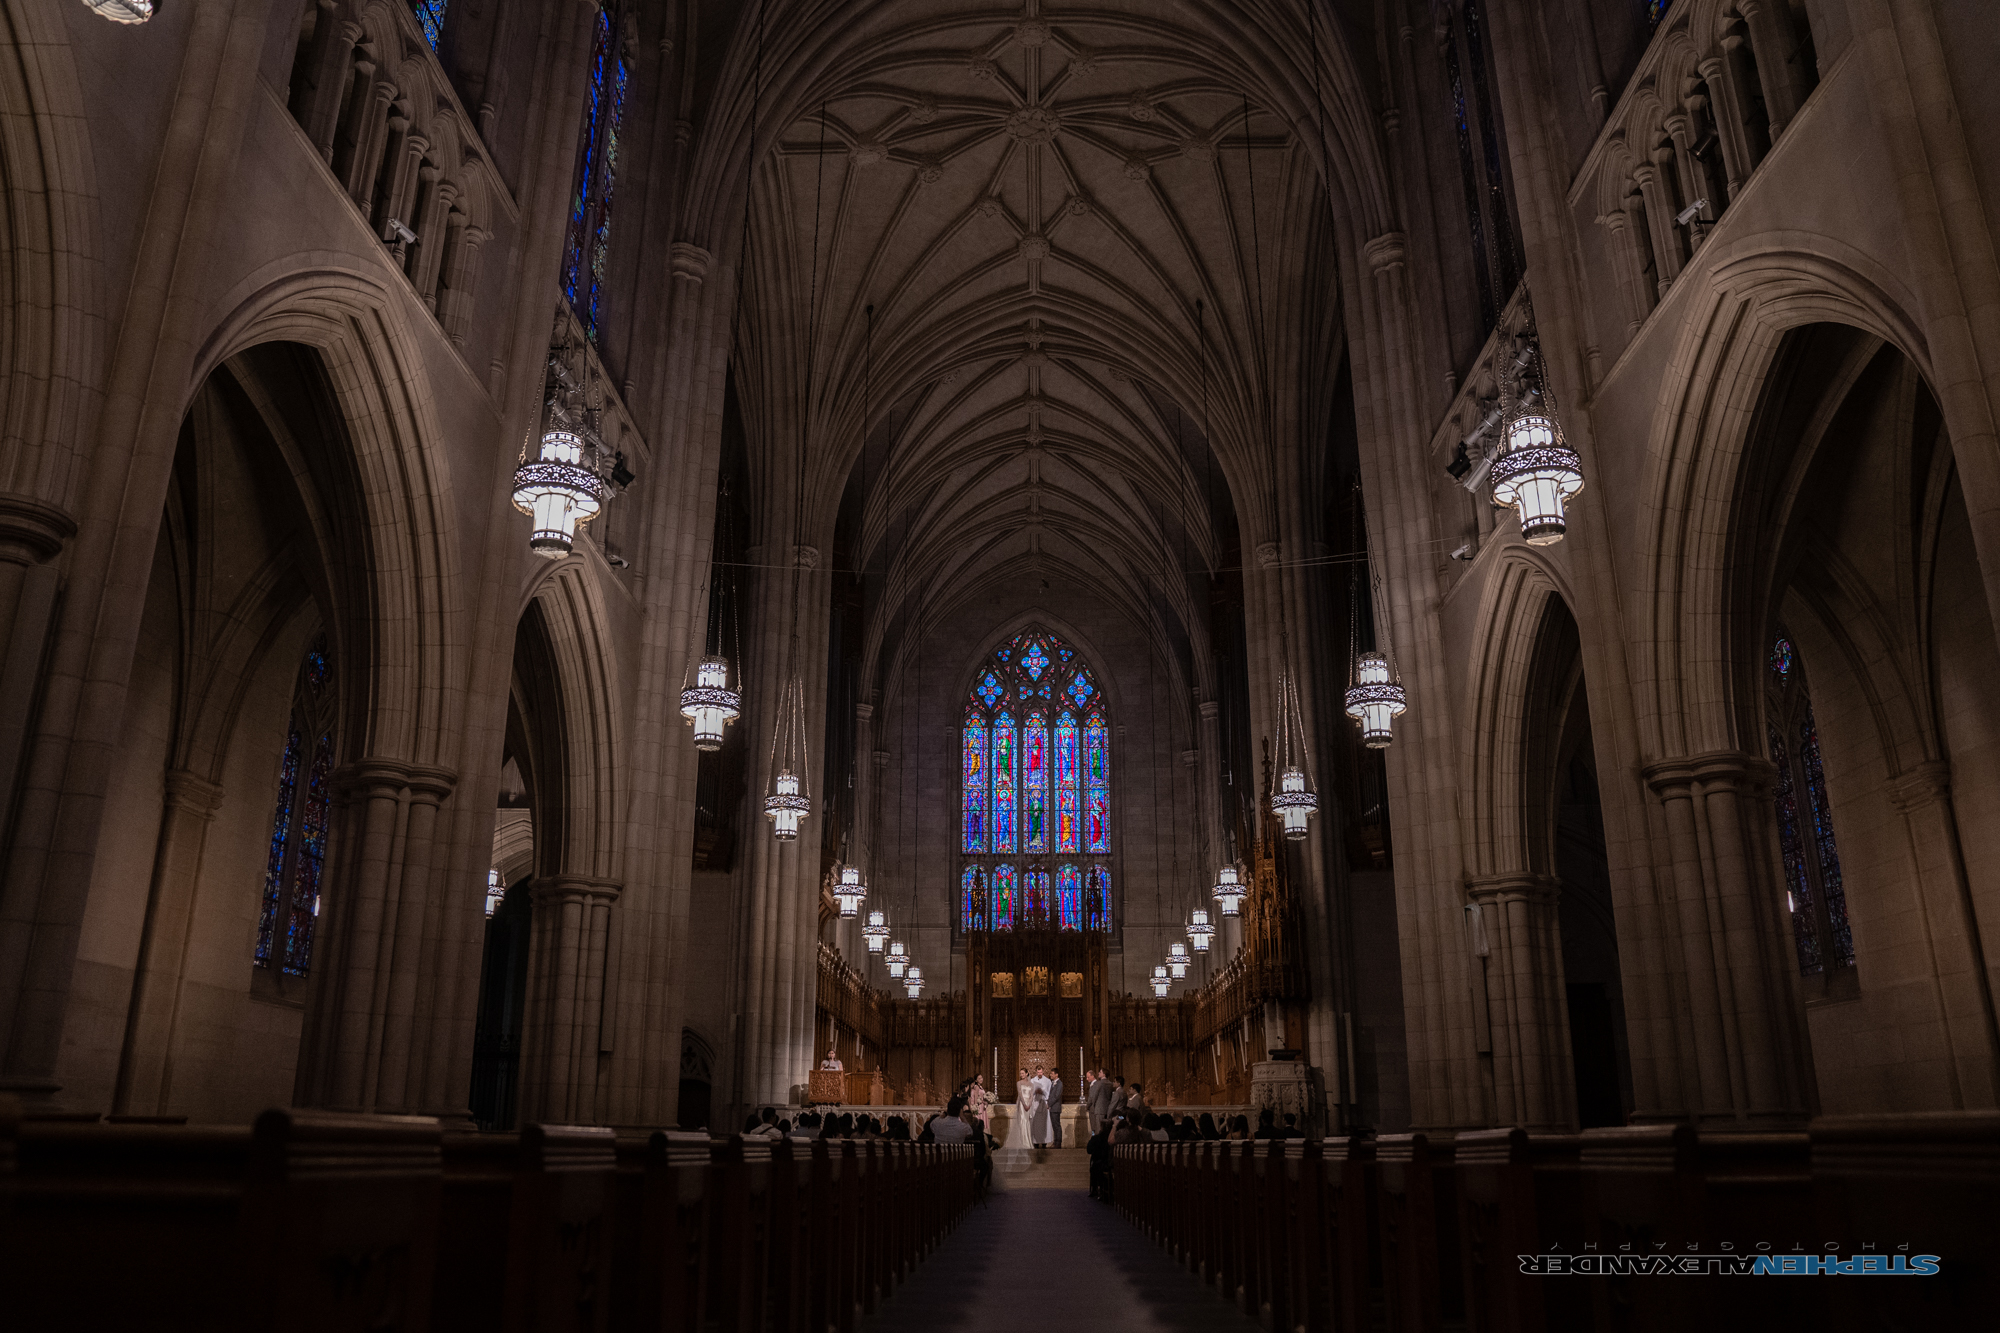 Duke Chapel Wedding —June 2019